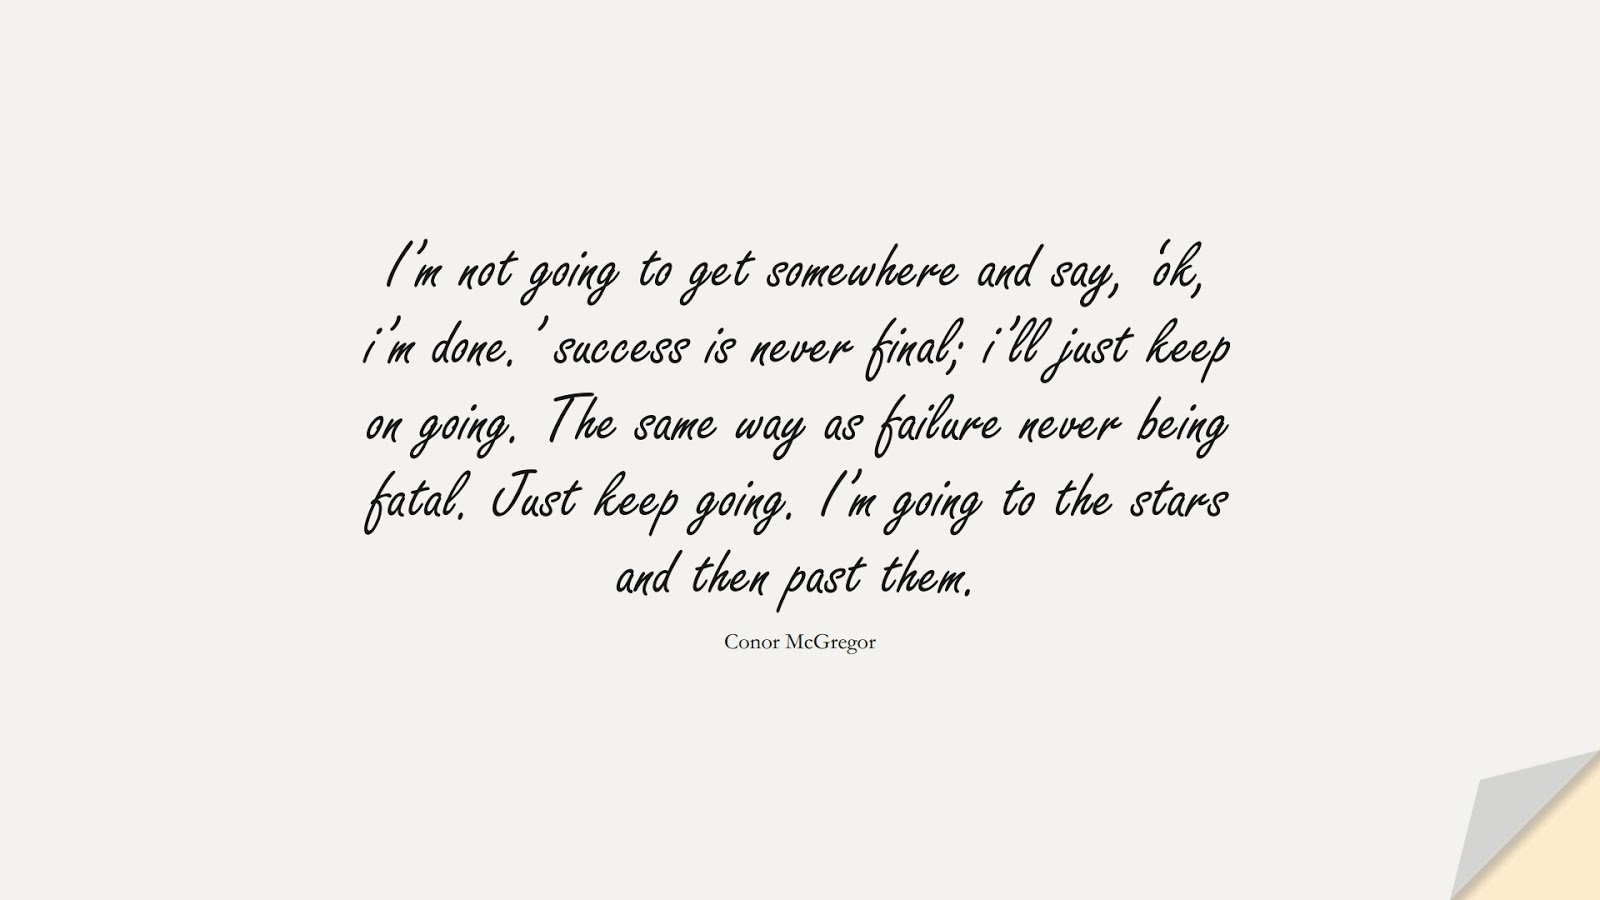 I'm not going to get somewhere and say, 'ok, i'm done.' success is never final; i'll just keep on going. The same way as failure never being fatal. Just keep going. I'm going to the stars and then past them. (Conor McGregor);  #PerseveranceQuotes